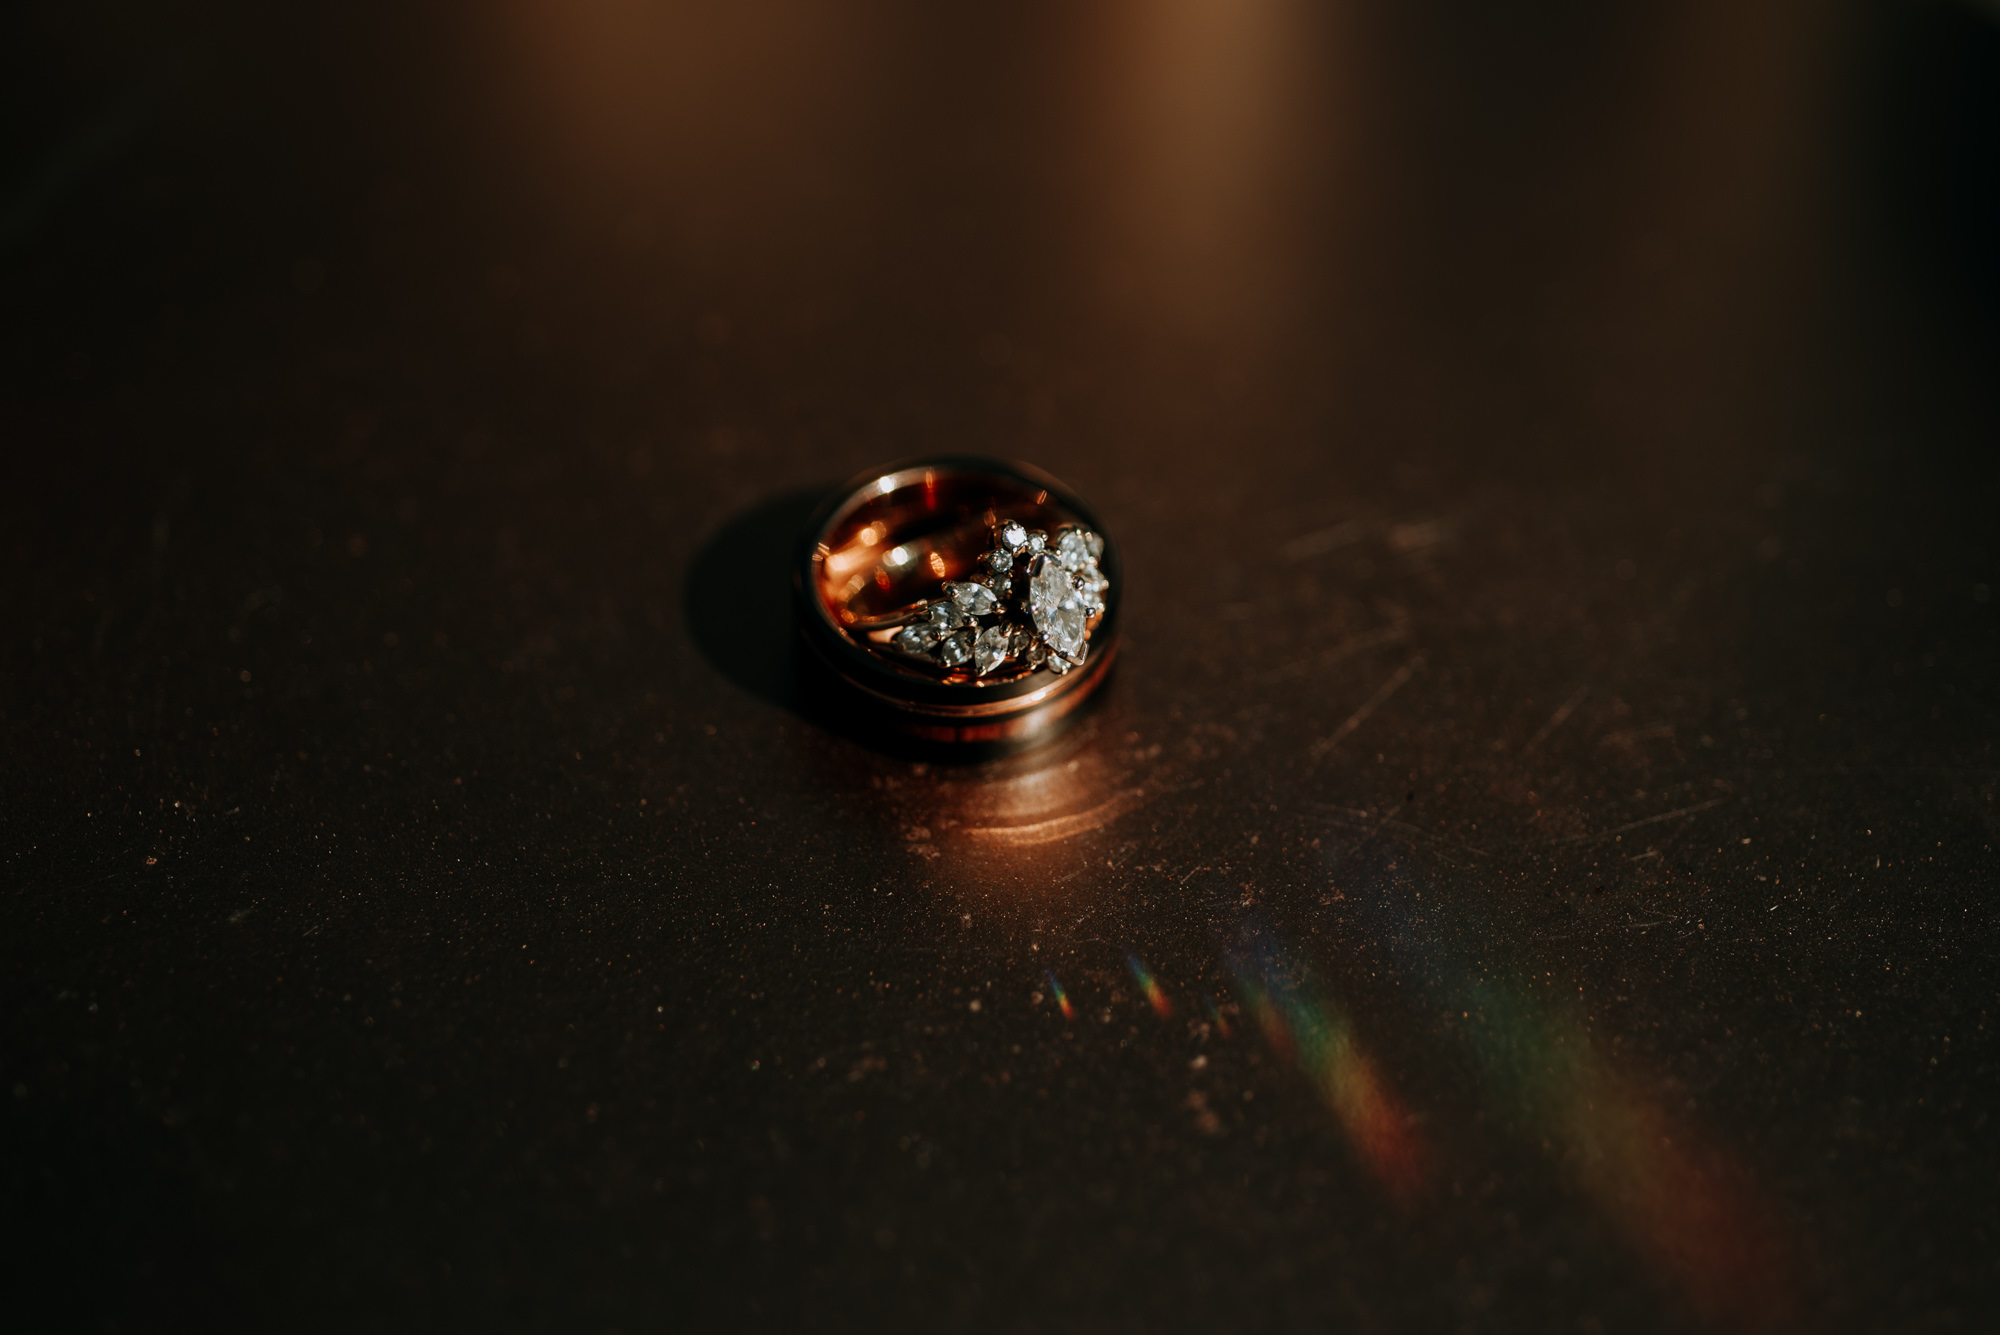 A rose gold and diamond wedding ring is placed on top of his wedding band. Rainbow refracts on the rose gold surface.